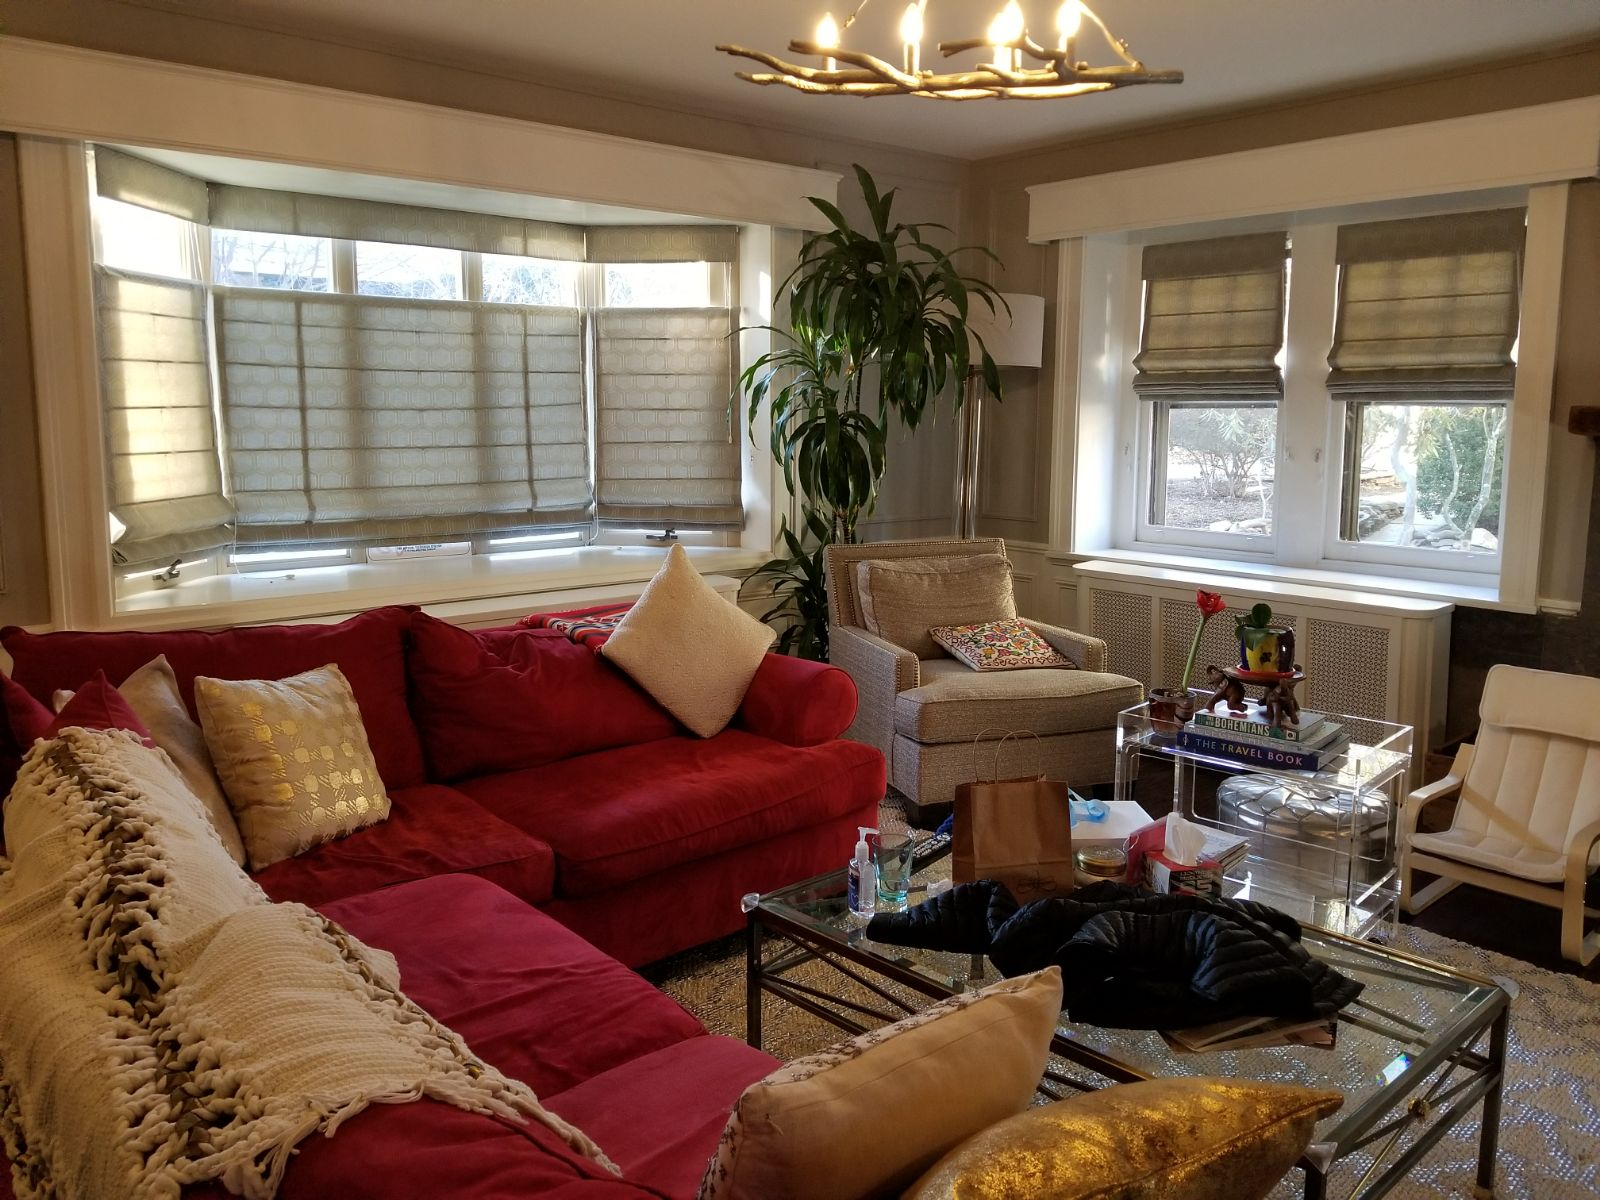 Most Popular Window Treatments 2019: Our Most Popular Types Of Window Treatments